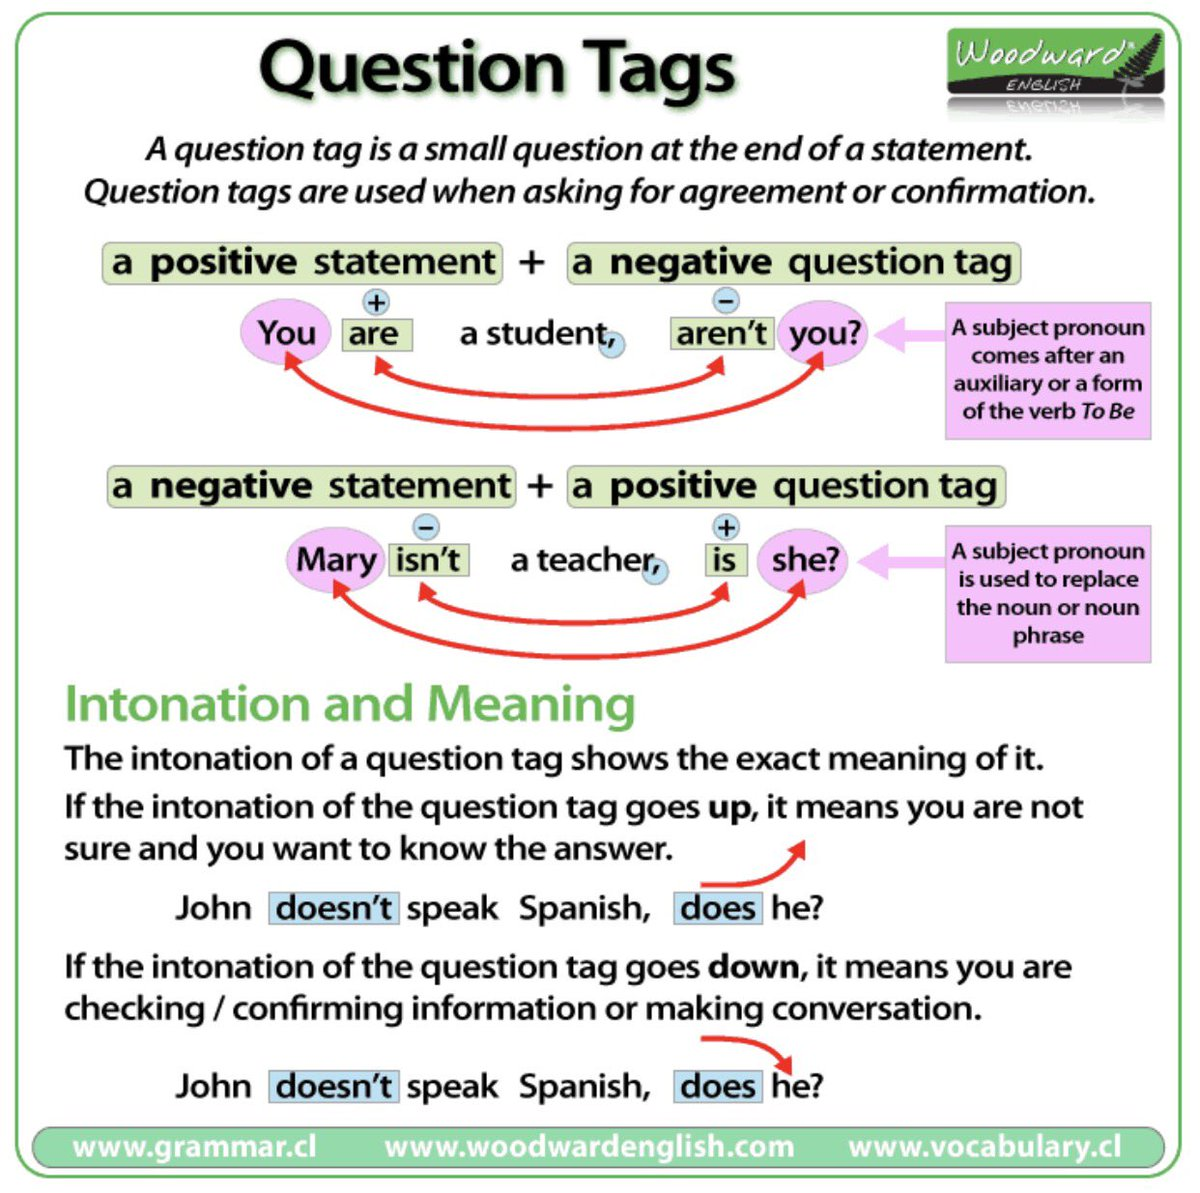 Bath Academy English On Twitter This Week Were Practicing